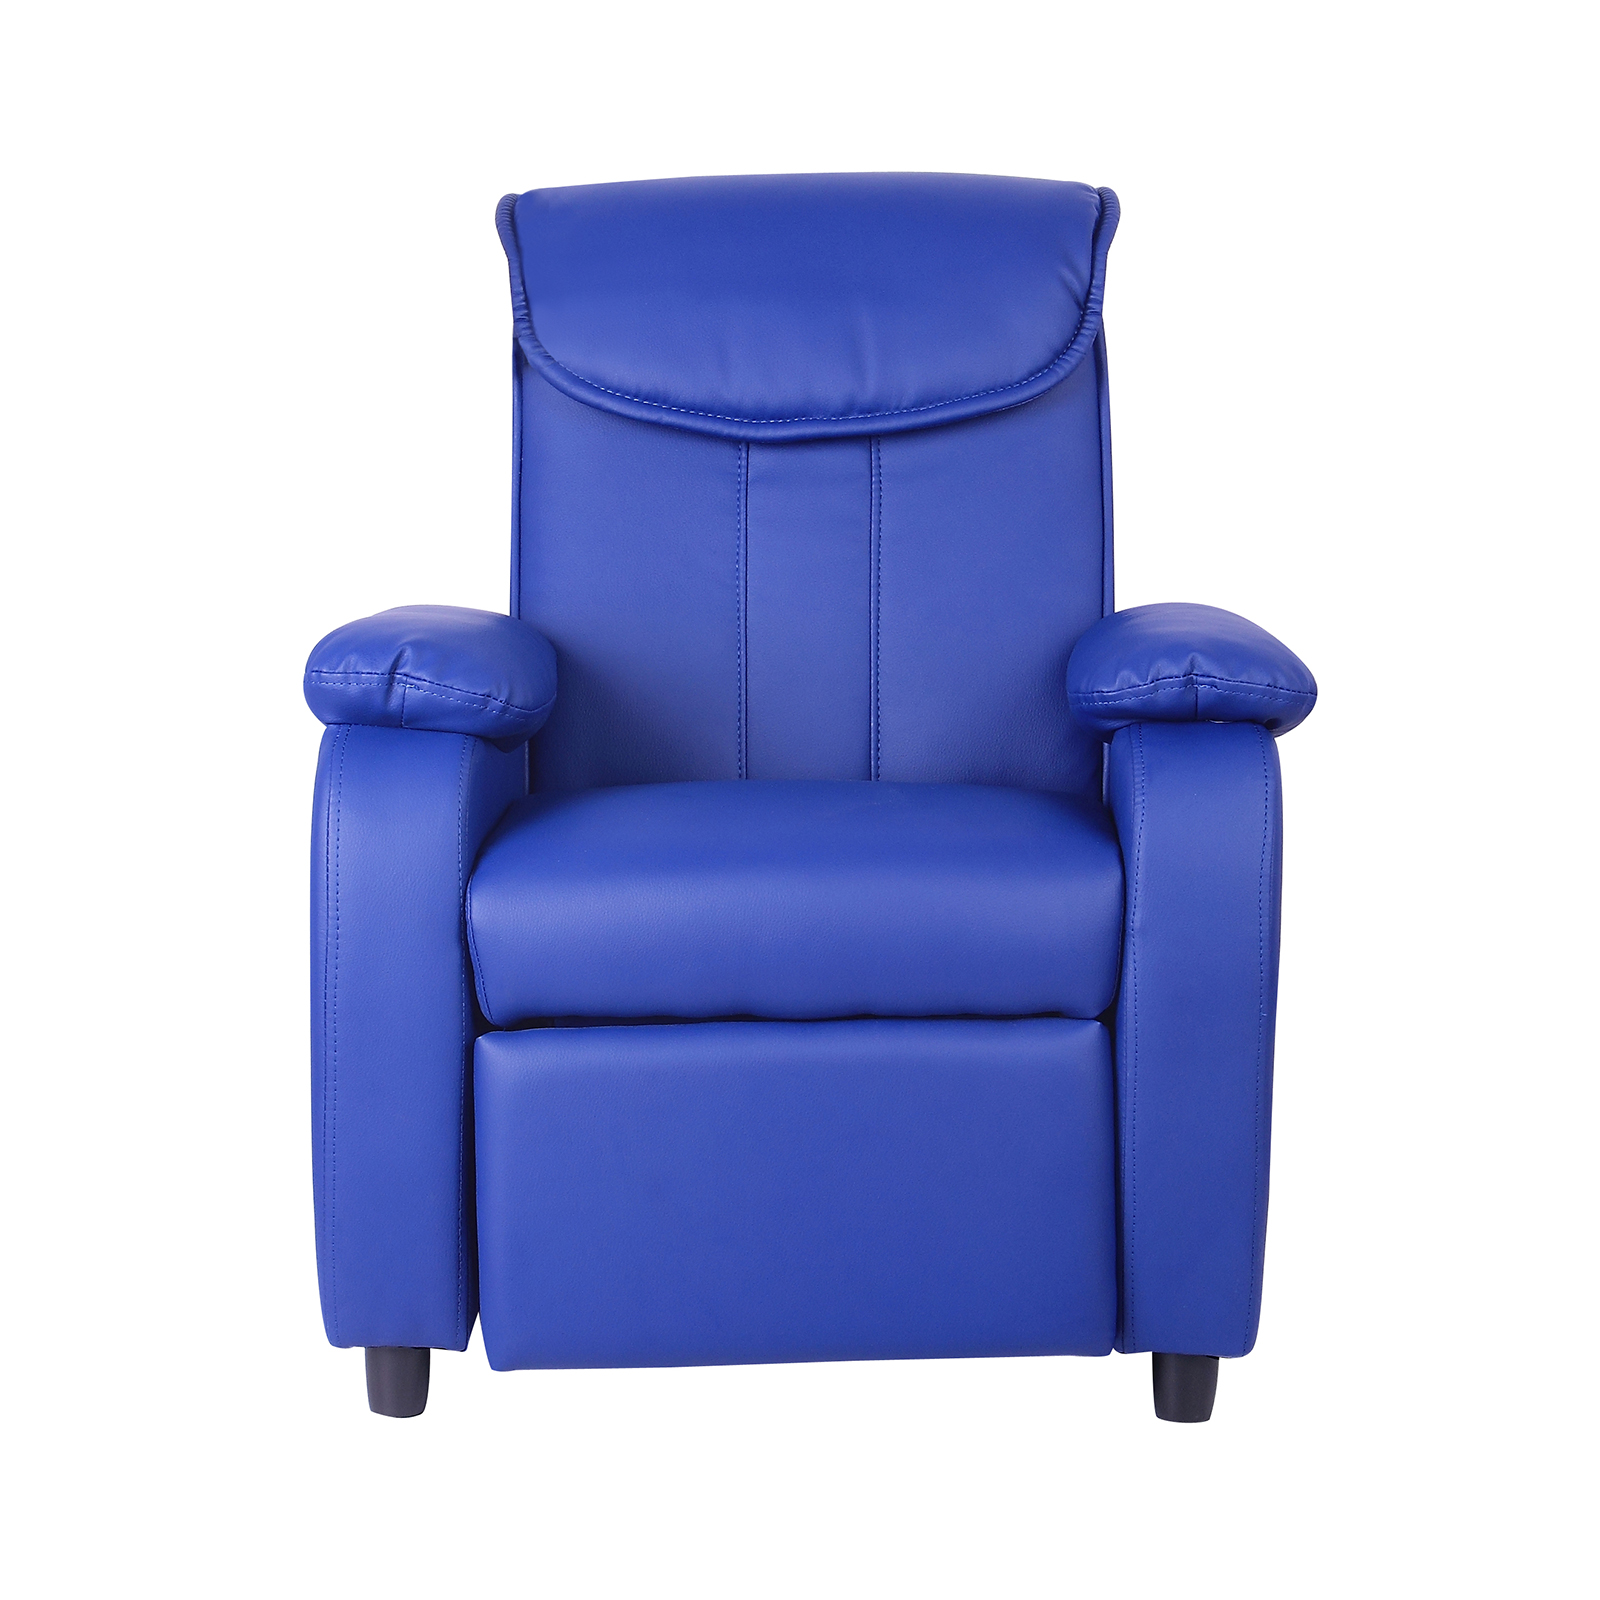 Childrens Luxury Recliner Chair Comfy Faux Leather ...